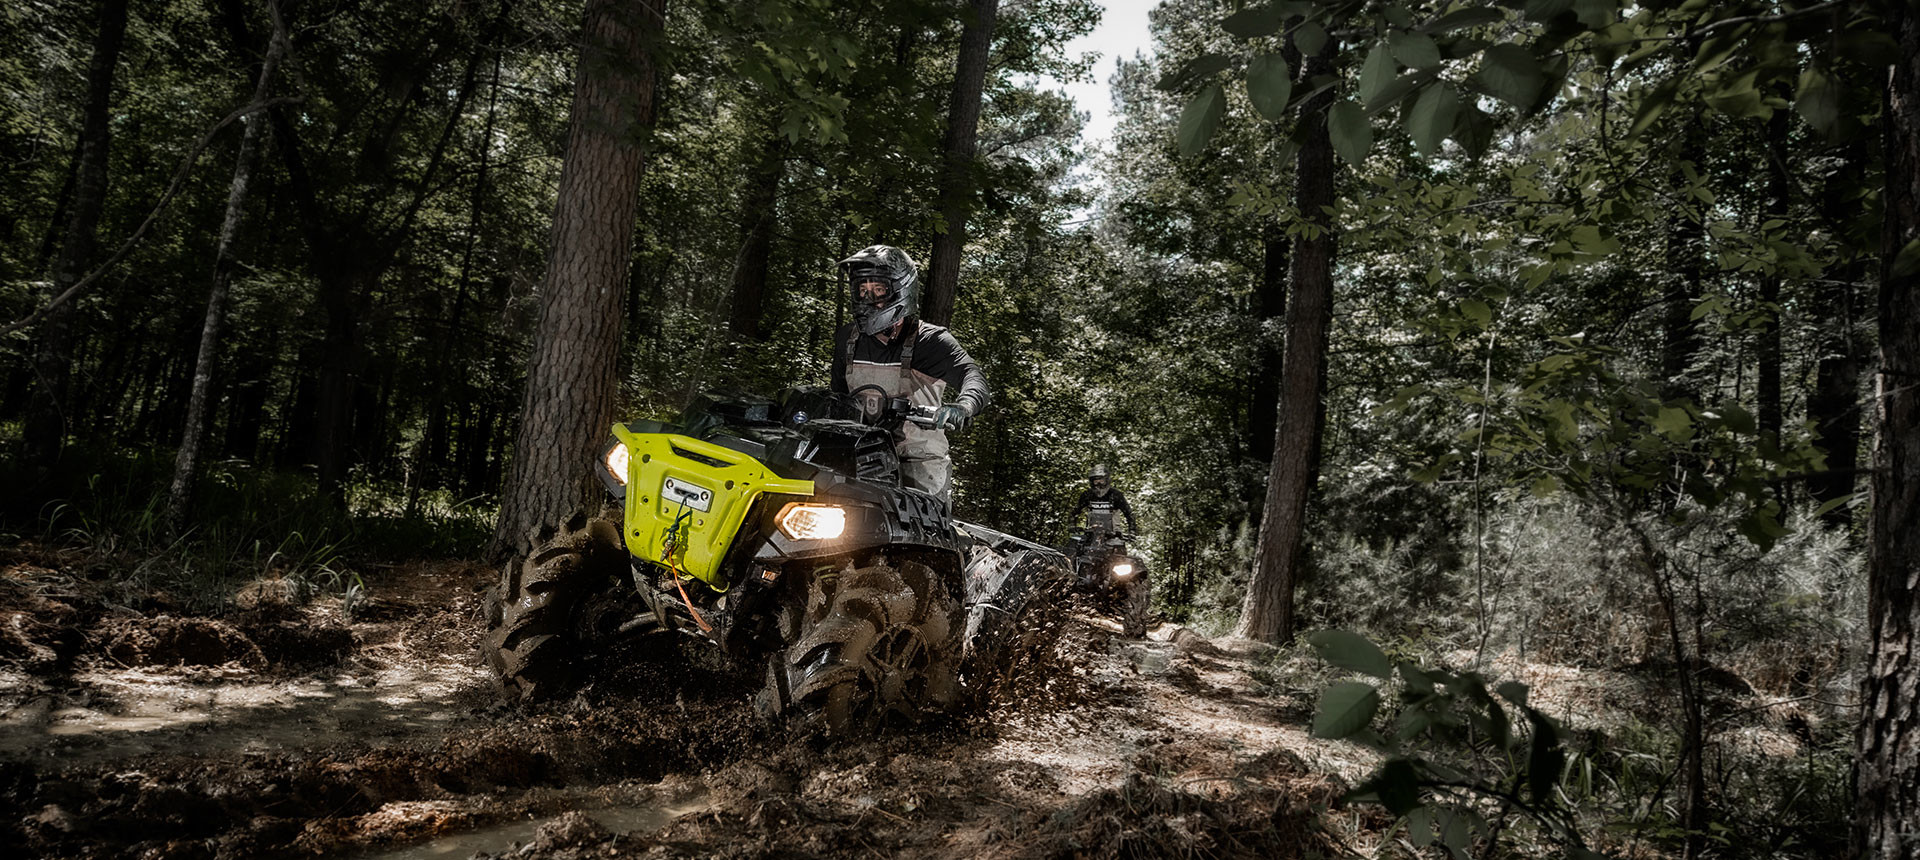 2020 Sportsman® 850 High Lifter Edition Instagram image 7